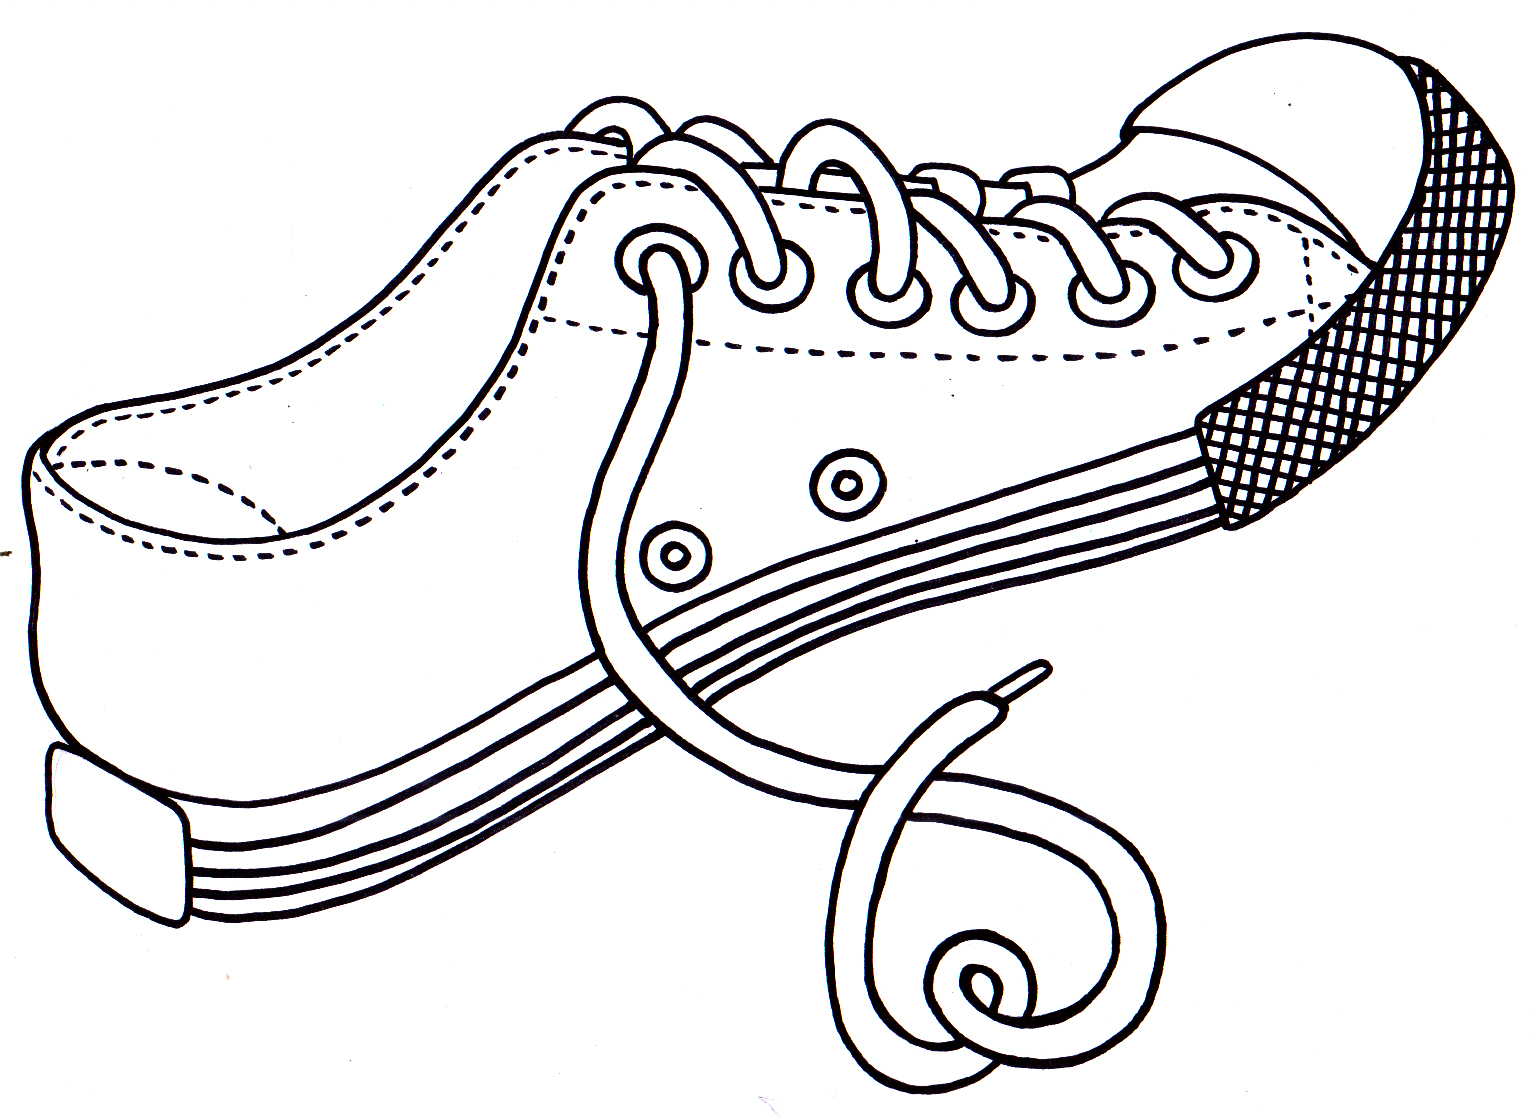 Shoe Coloring Pages Free Printable Pictures Coloring Coloring Pages Shoes